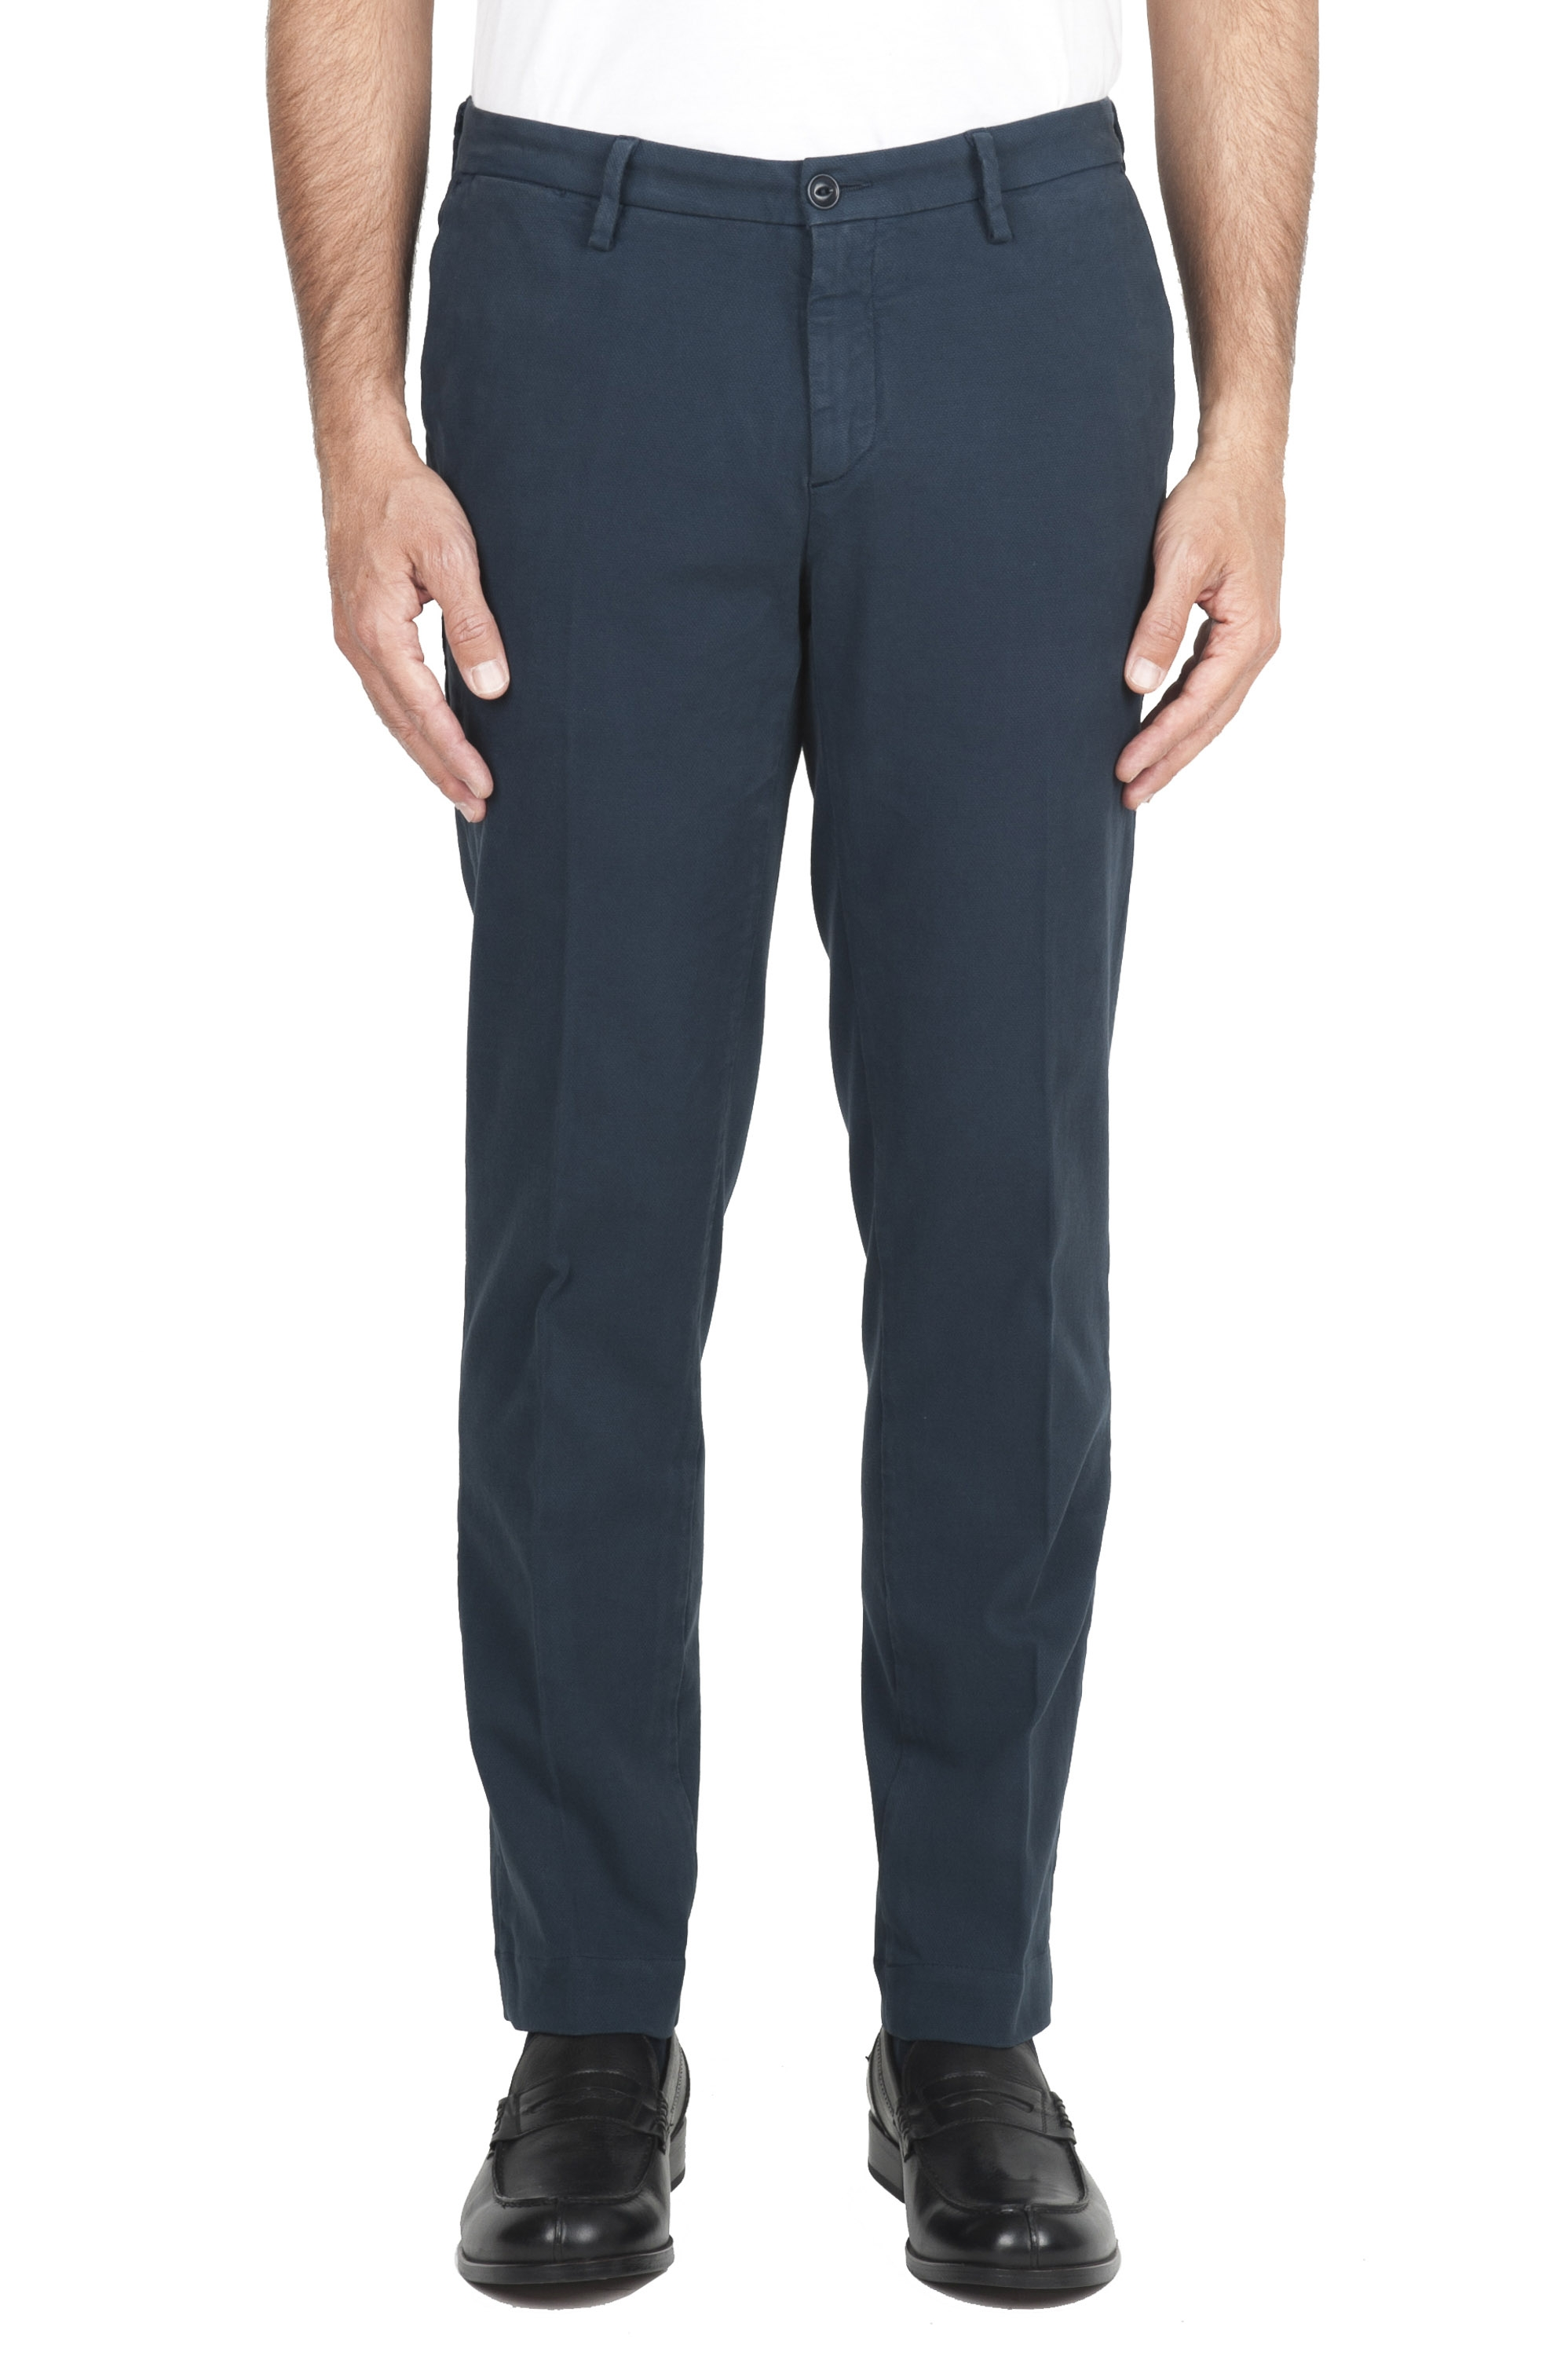 SBU 01544 Pantalon chino classique en coton stretch blue 01